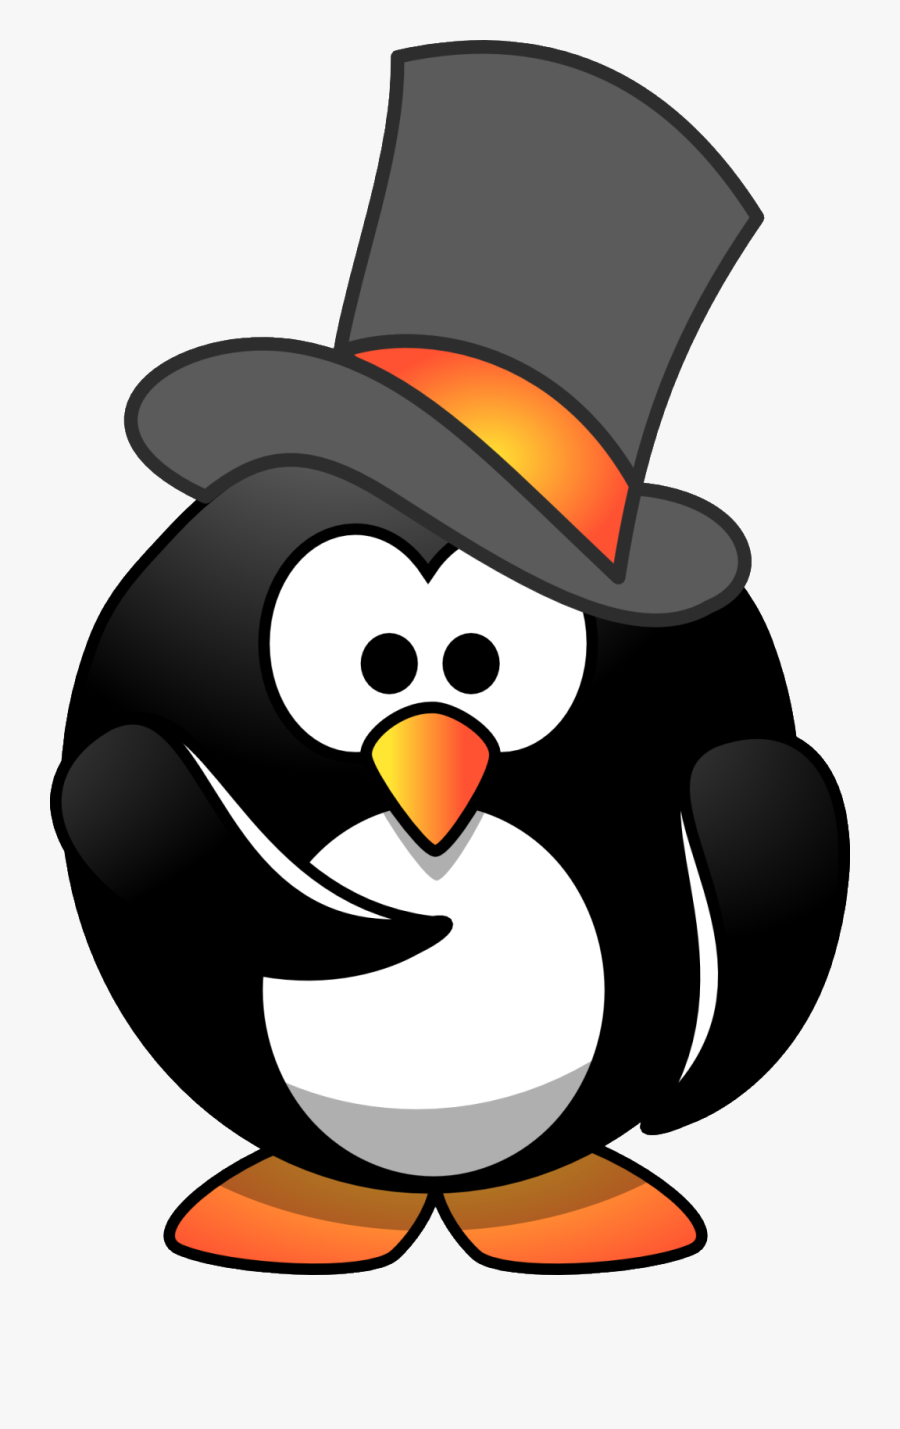 Top Hat Clipart Small - Cartoon Penguin With A Top Hat, Transparent Clipart